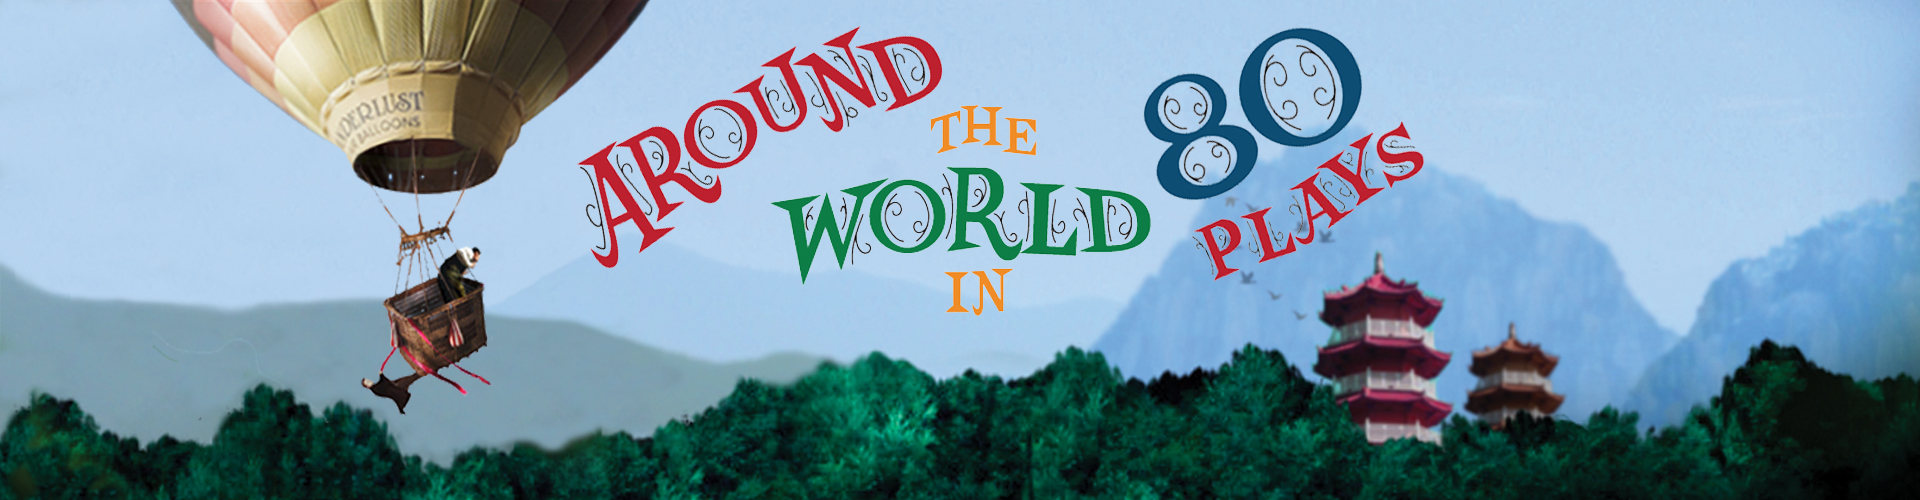 Around the World in 80 Plays banner image